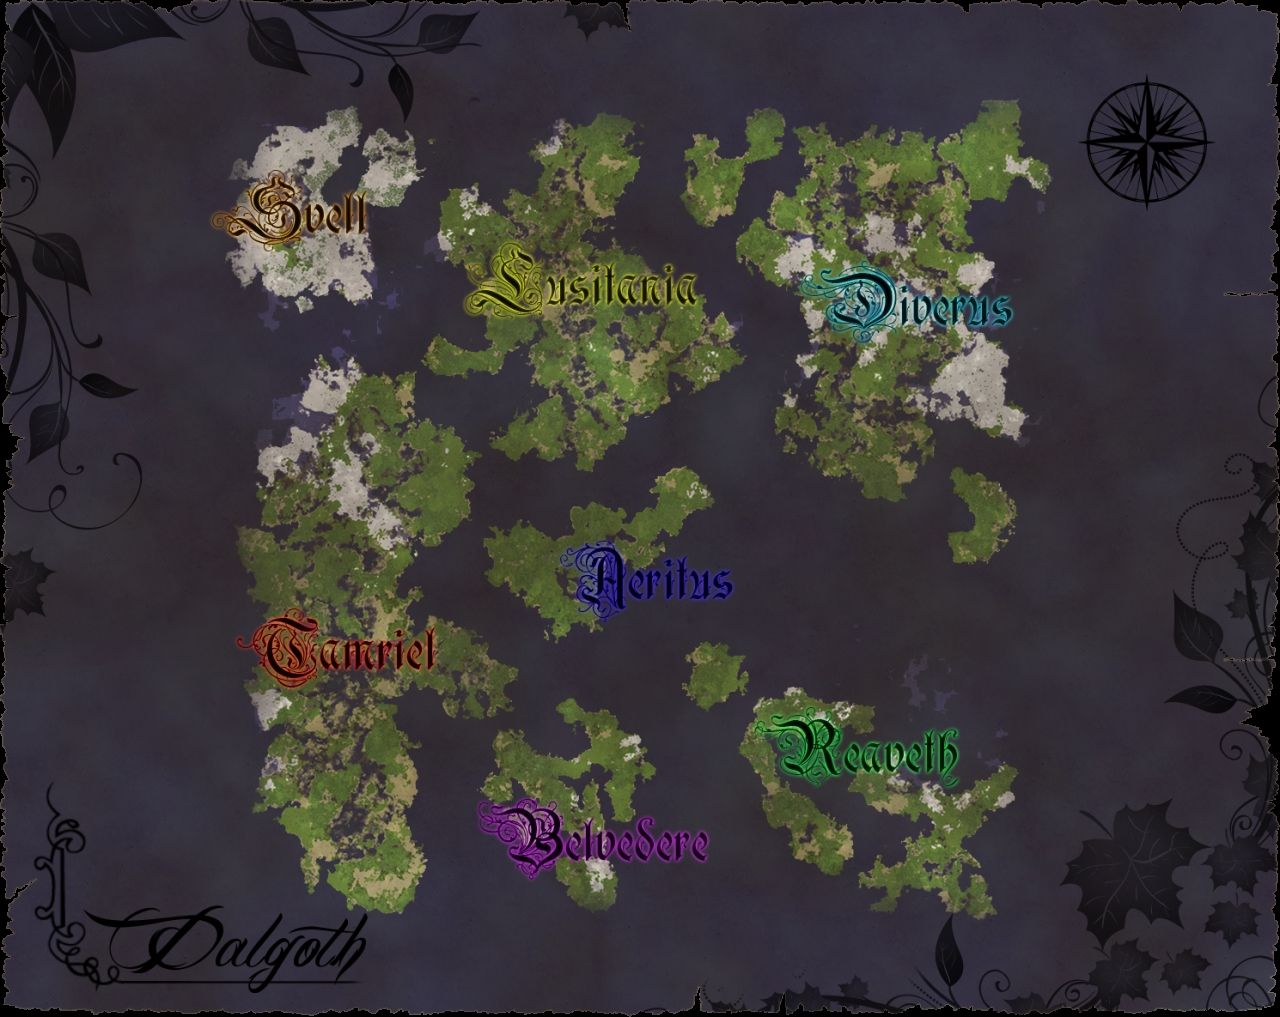 The world map, Aeritus in the dead center.